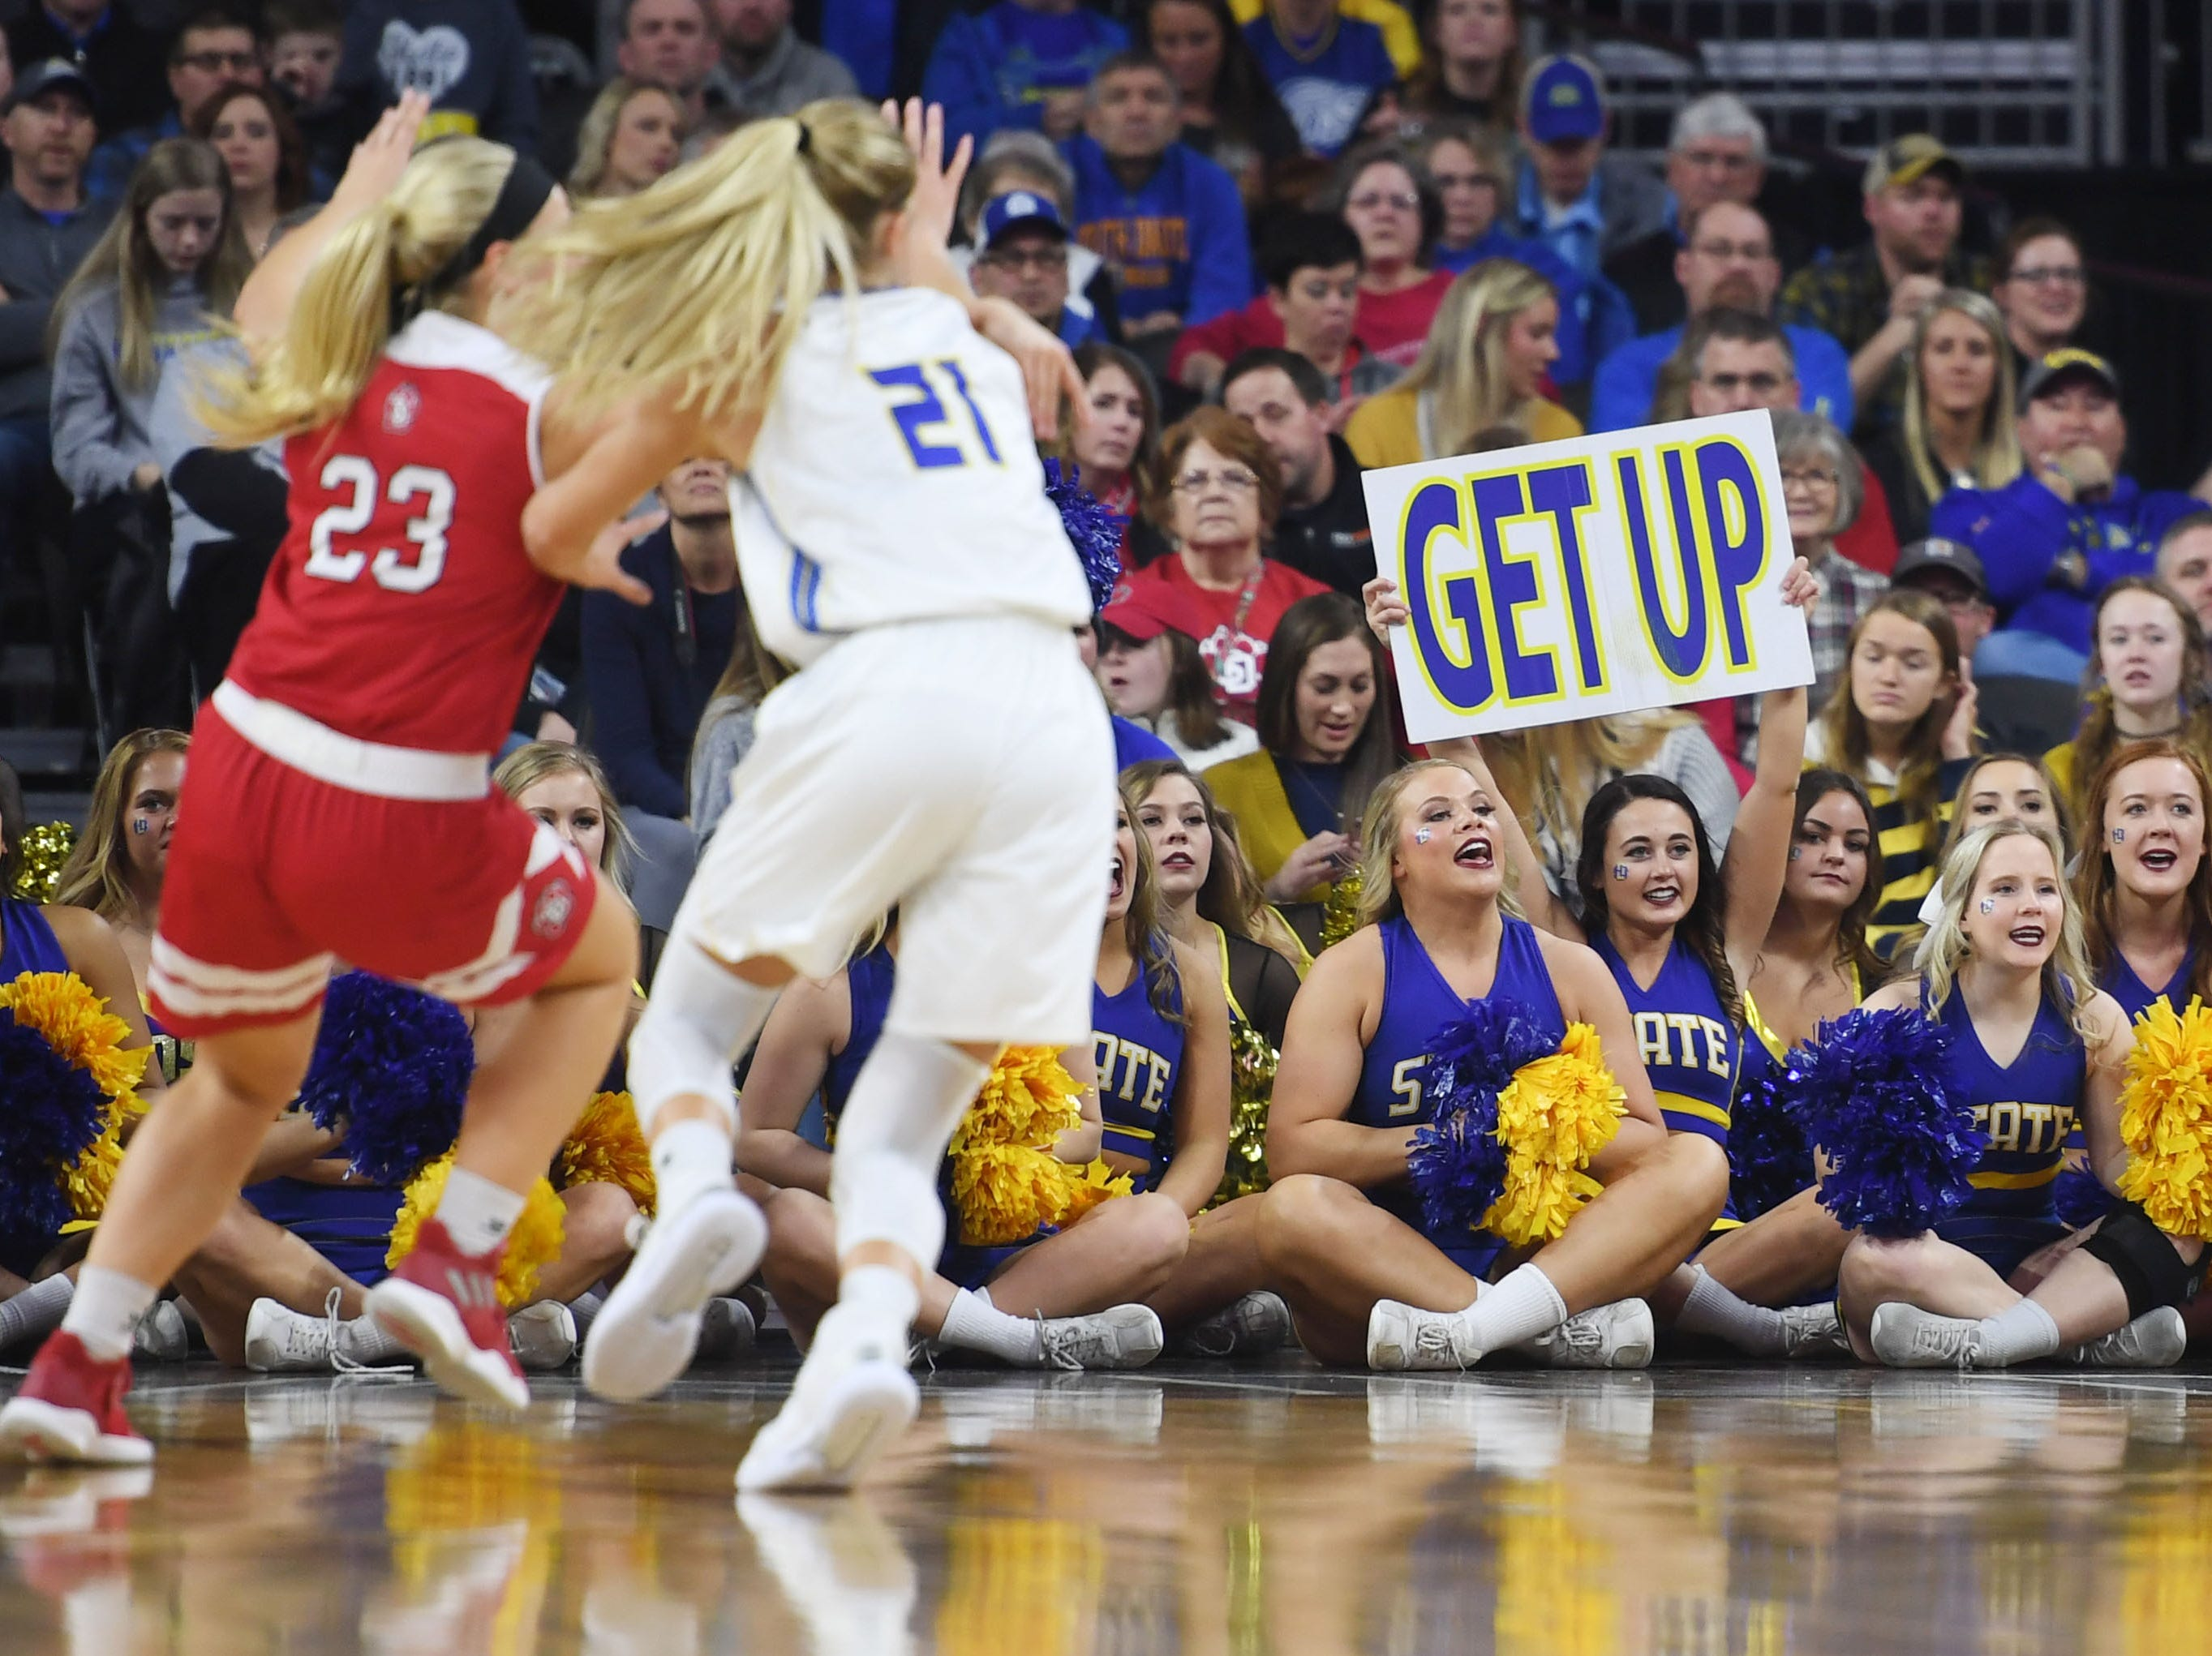 SDSU cheerleaders during the game against USD Tuesday, March 12, in the Summit League women's championship at the Denny Sanford Premier Center in Sioux Falls.